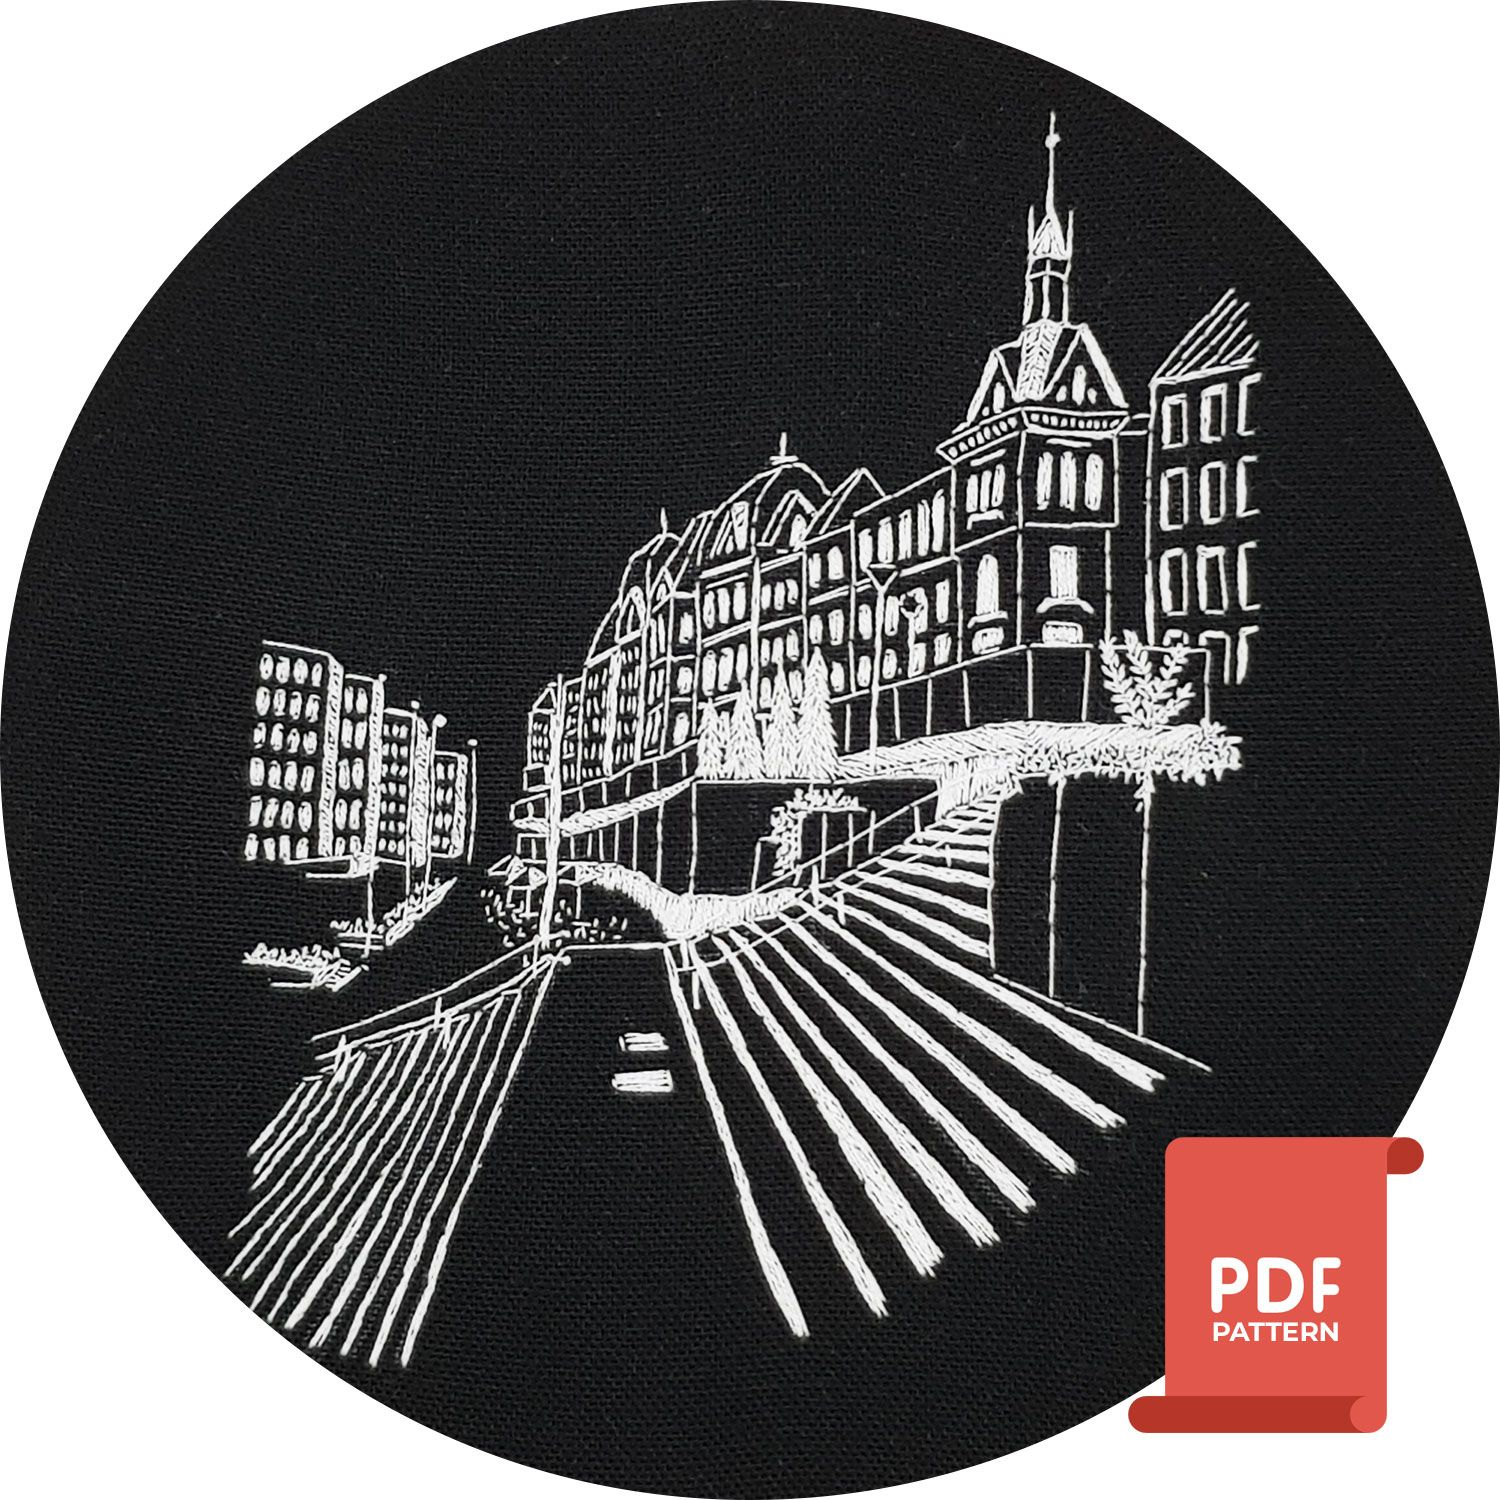 Oslo Norway embroidery pattern